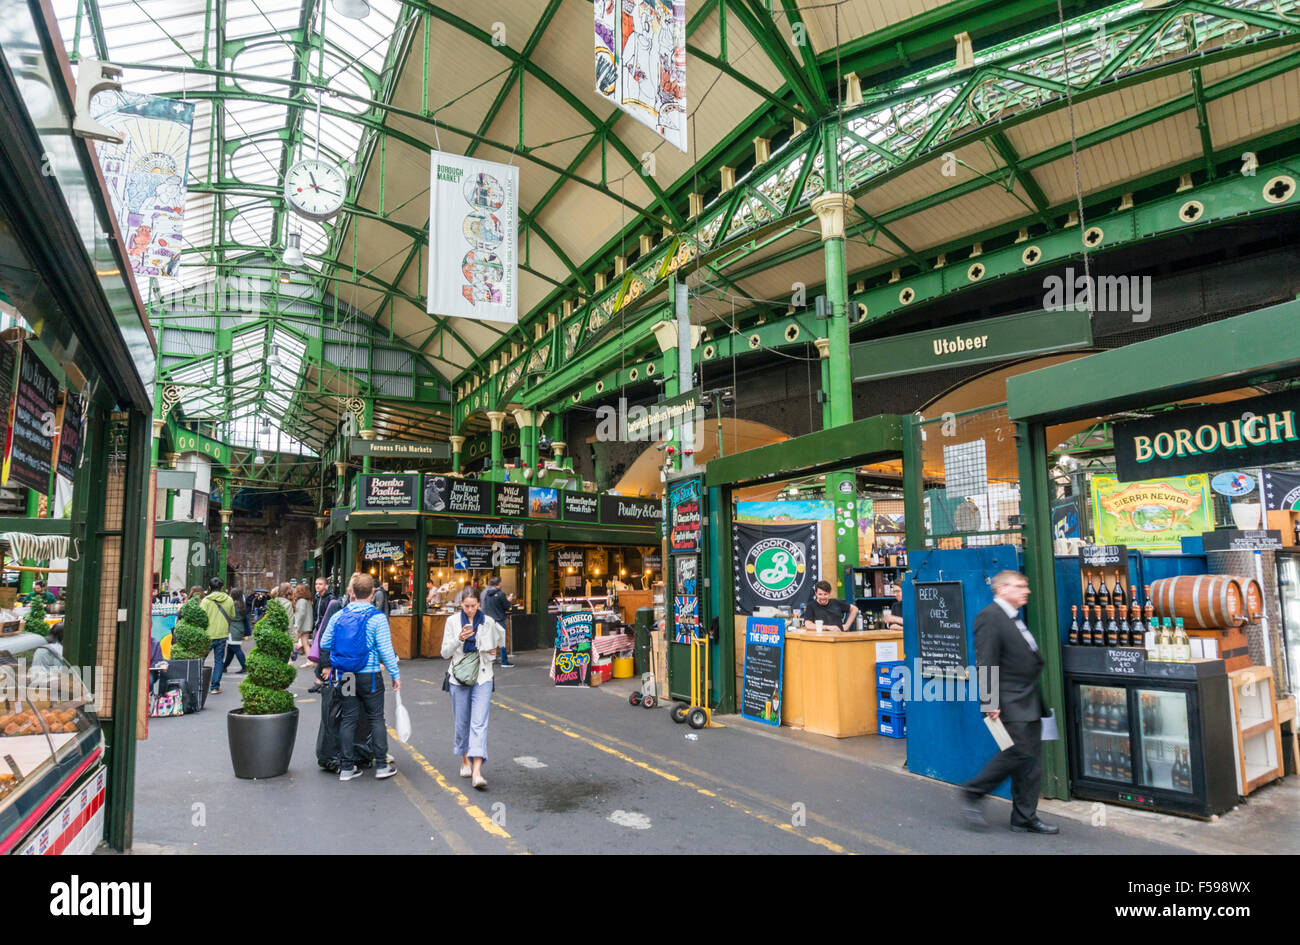 stall at Borough market borough high street London England UK GB EU Europe - Stock Image